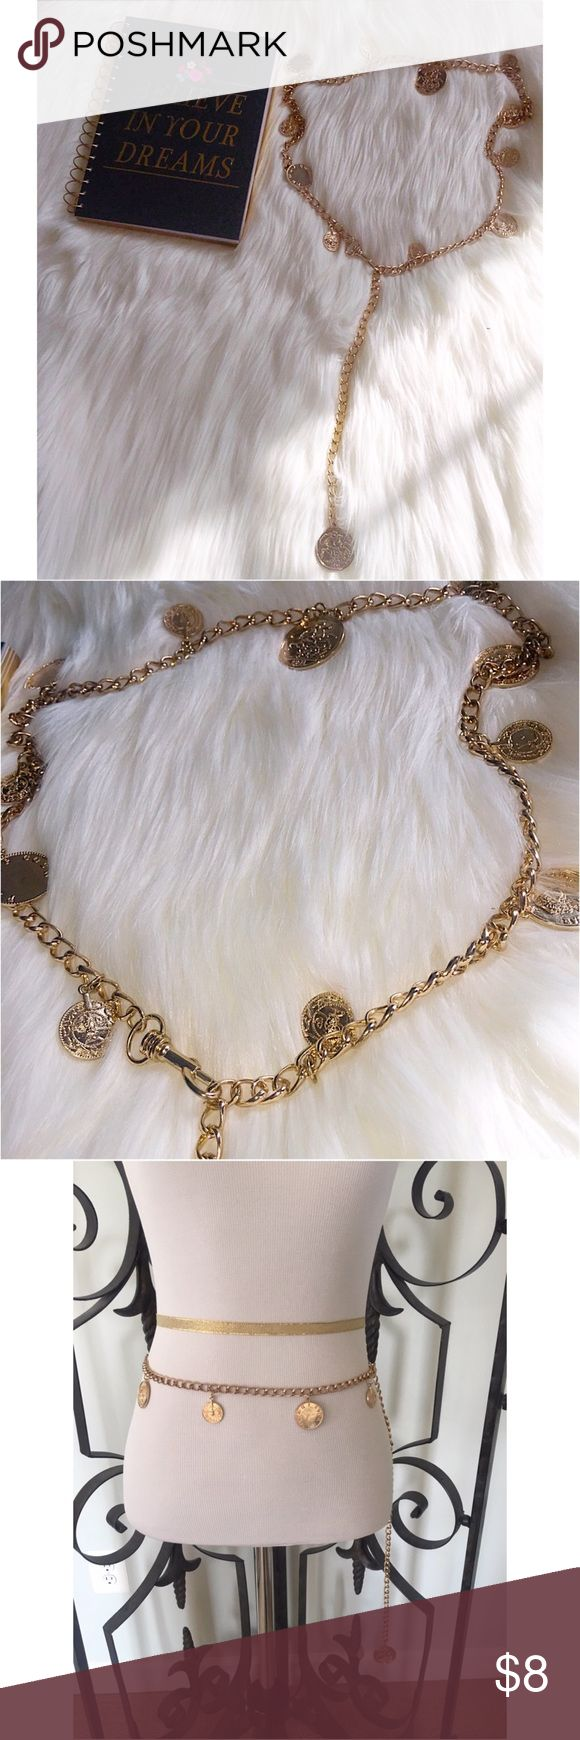 New Gold Coin Chain Belt New Gold Coin Chain Belt from H&M. Has adjustable clasp. Measures 44'. Perfect for Tunic tops and dresses. If you want it, make an offer ✅ I need to make room for new items so I love to negotiate. Bundle multiple items for the best savings. Pay one price of shipping 📦! Thanks for visiting.  😘 H&M Accessories Belts